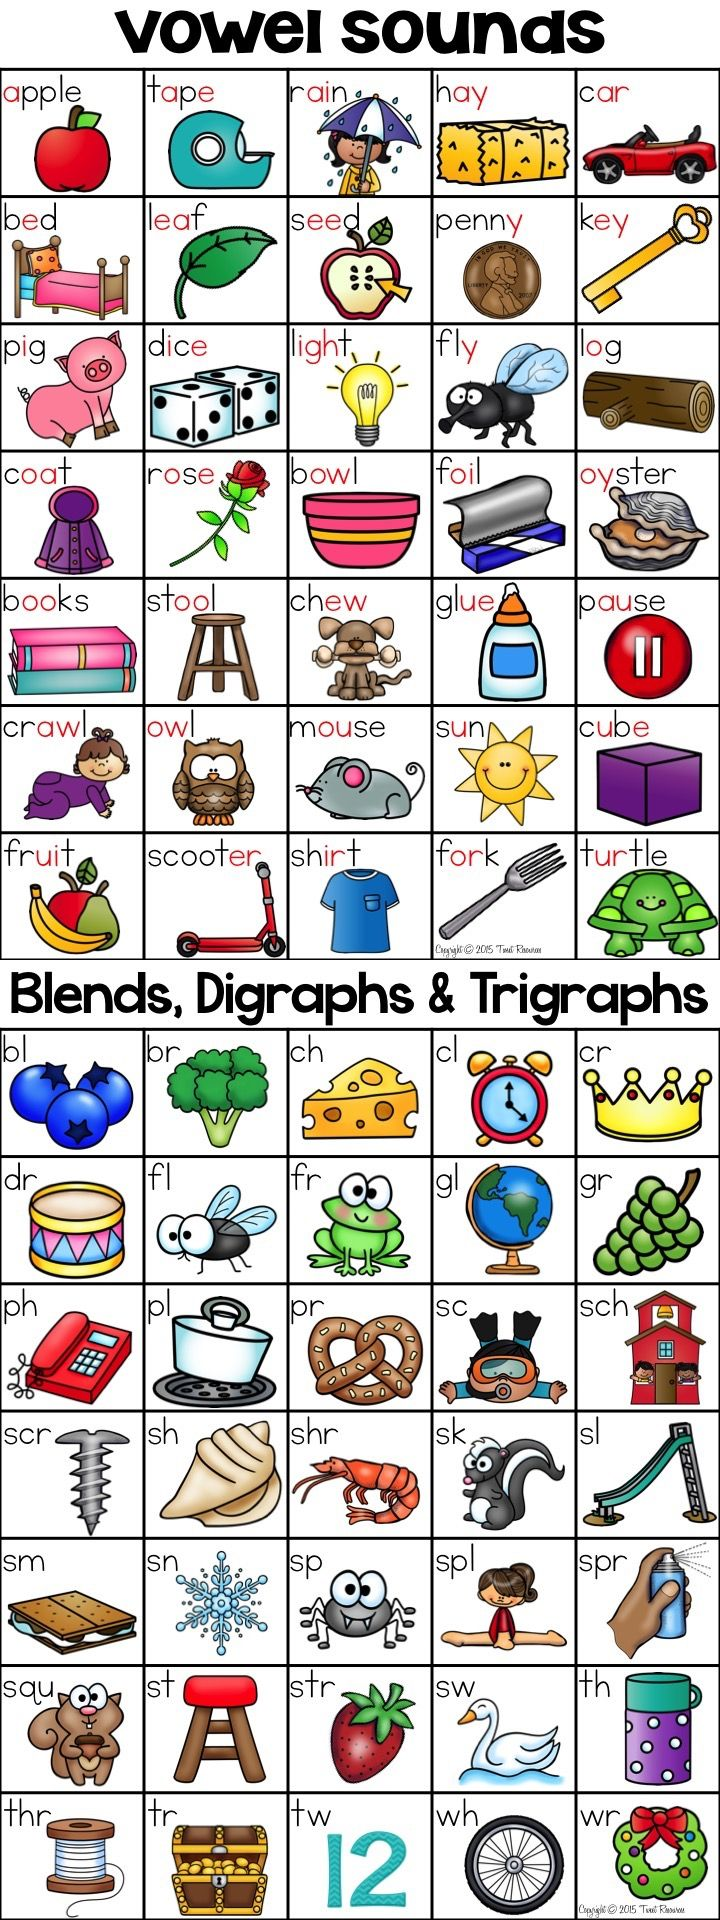 Alphabet, vowel sounds, blends, digraphs, trigraphs charts FREEBIE! By Tweet Resources